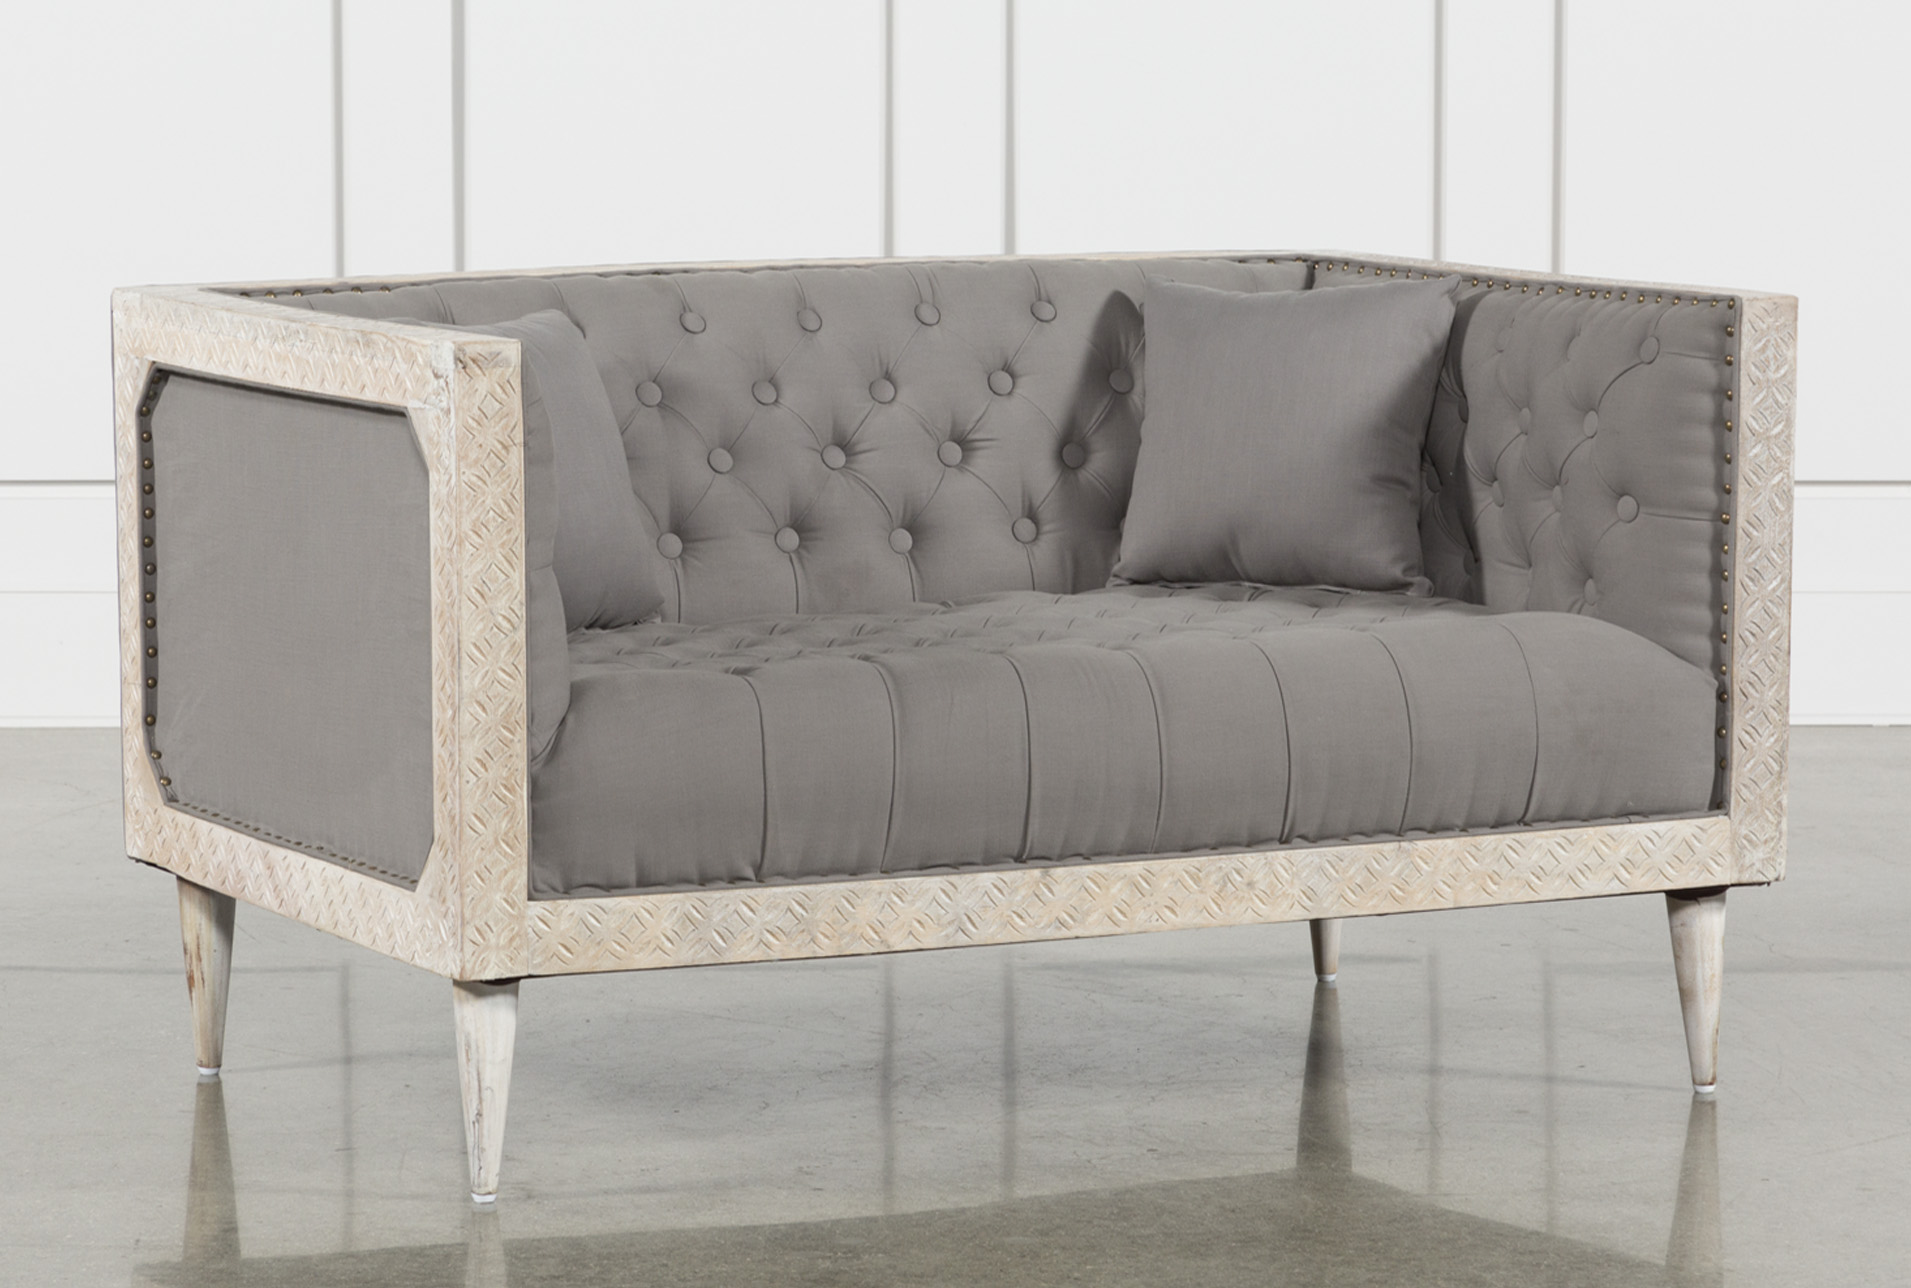 Oversized Grey Tufted Chair With White Wash